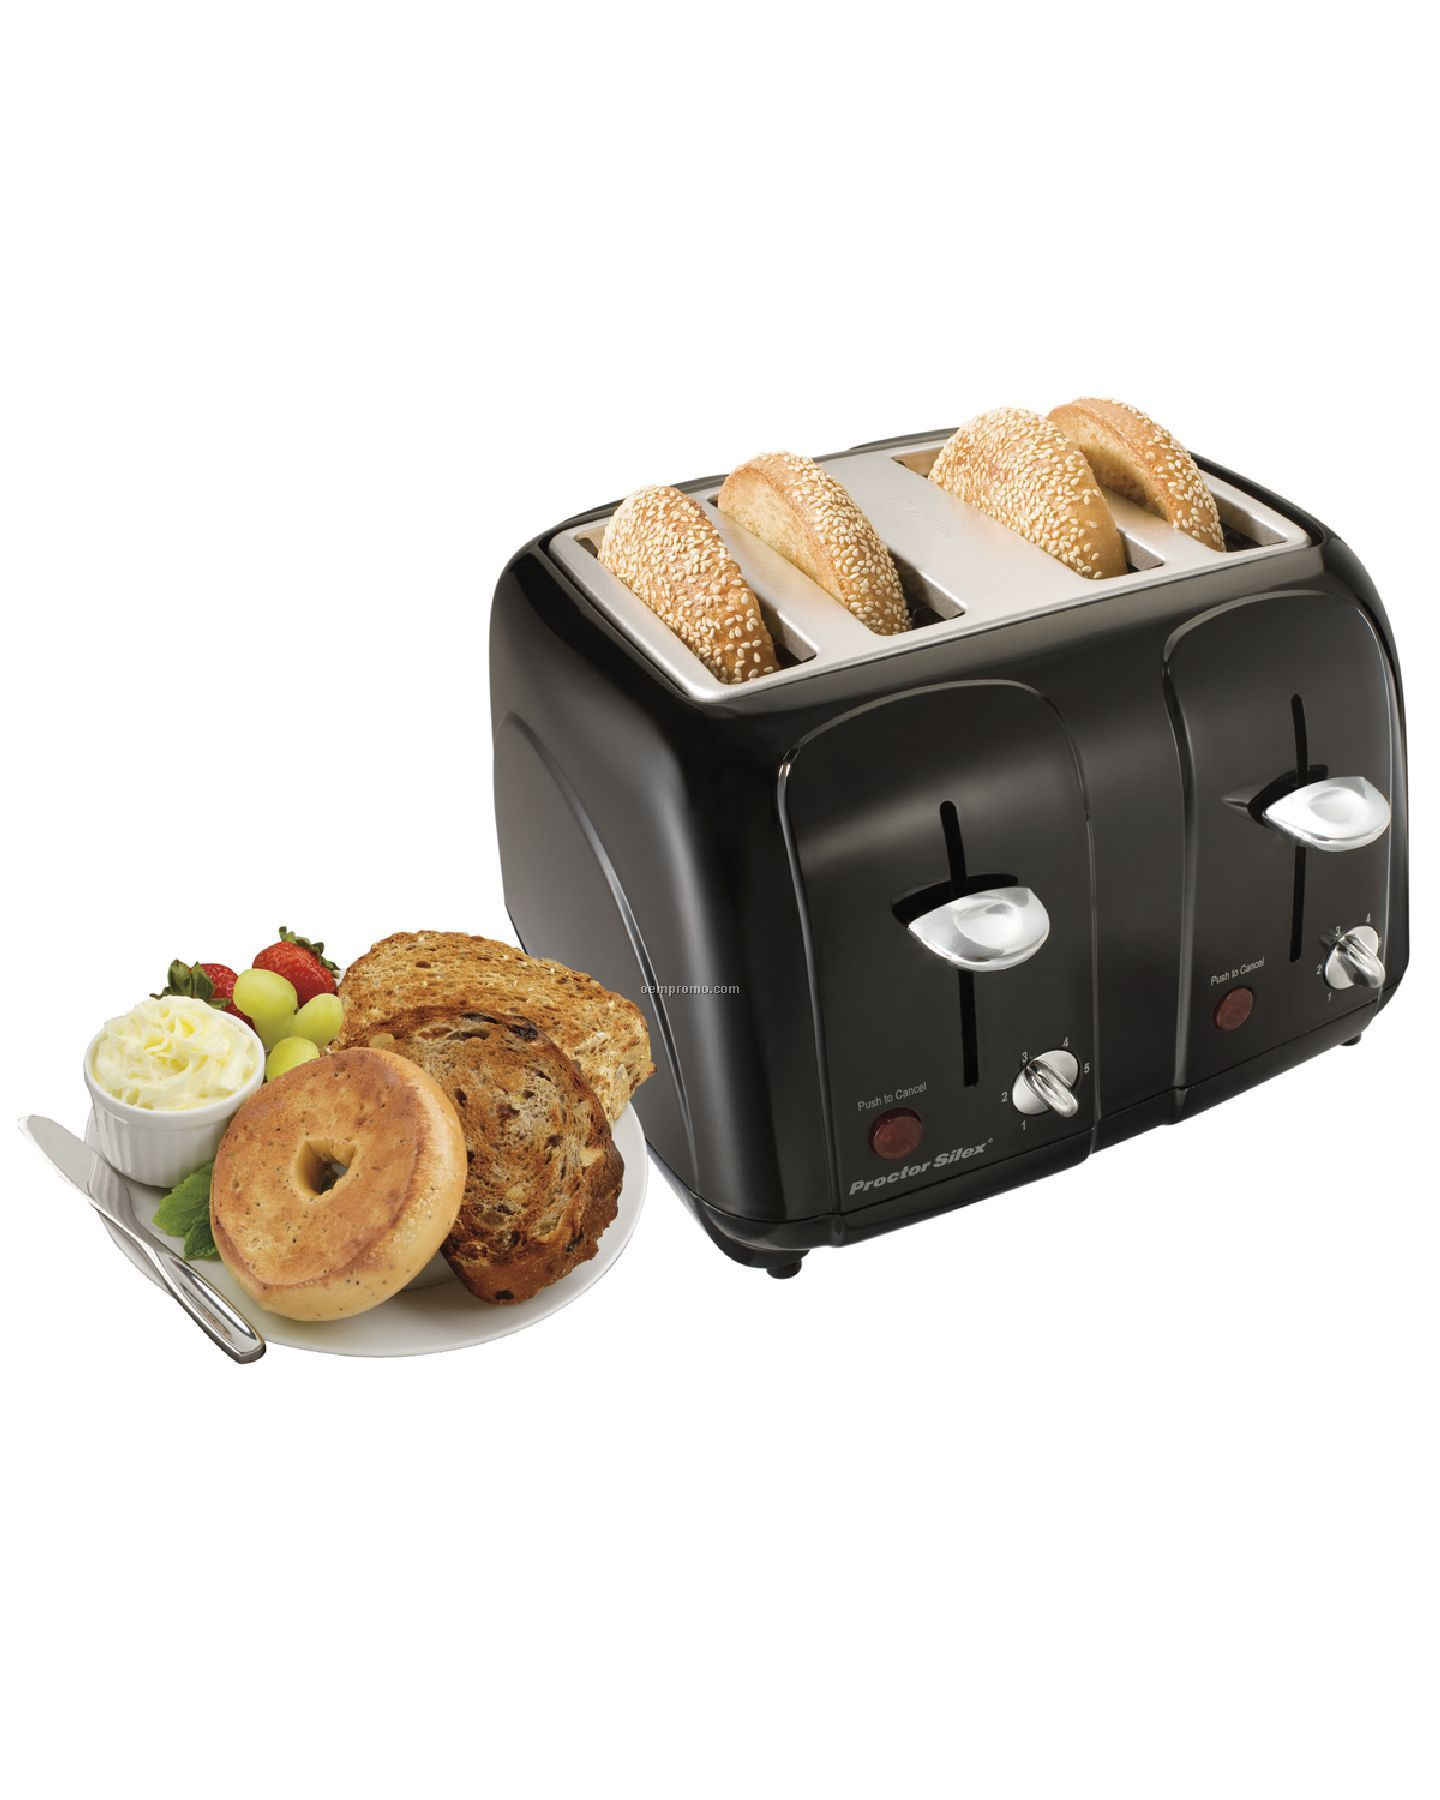 Proctor Silex - Toasters - Blk 4 Slice Cool Touch Toaster